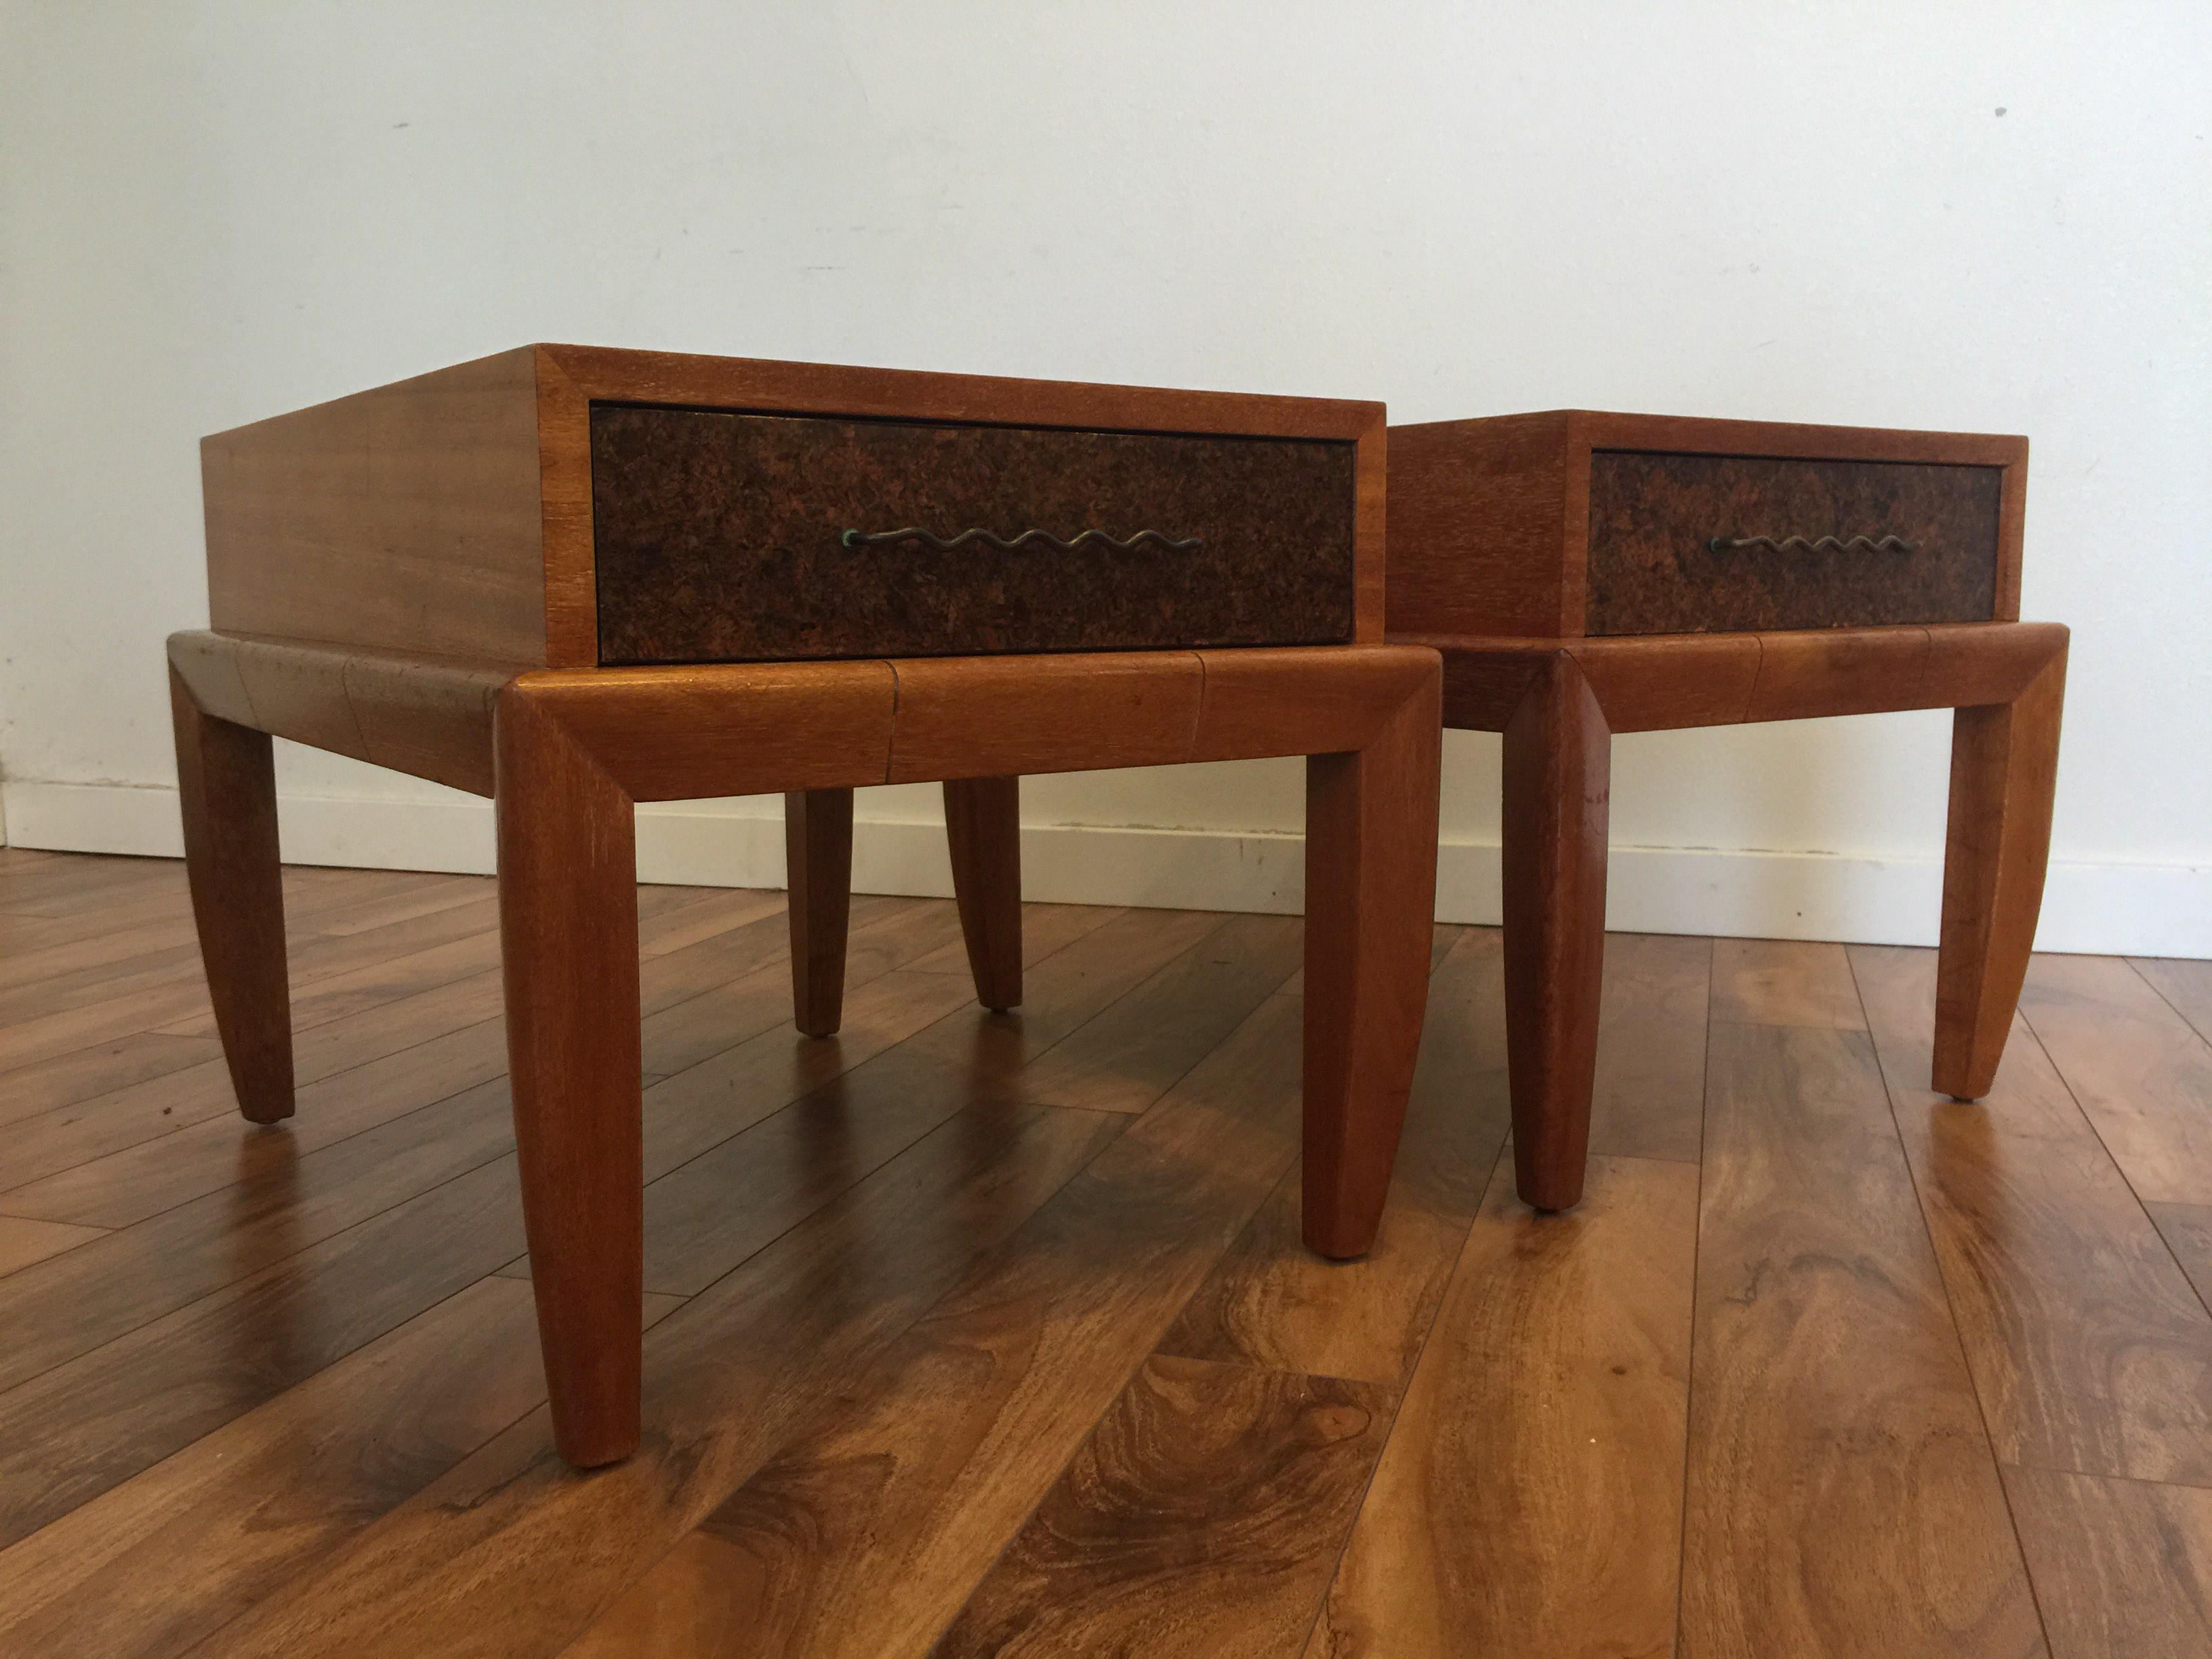 John Keal For Brown Saltman Mahogany U0026 Cork End Tables   A Pair   Image 4